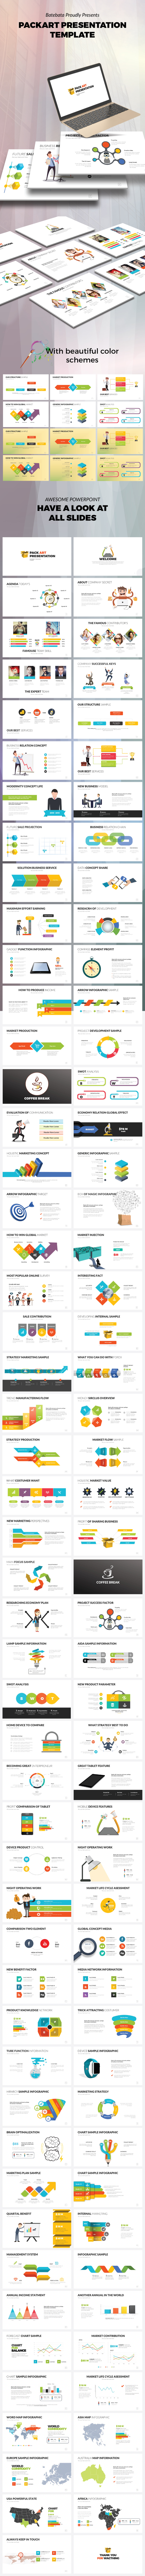 PackArt Presentation Template - Business PowerPoint Templates